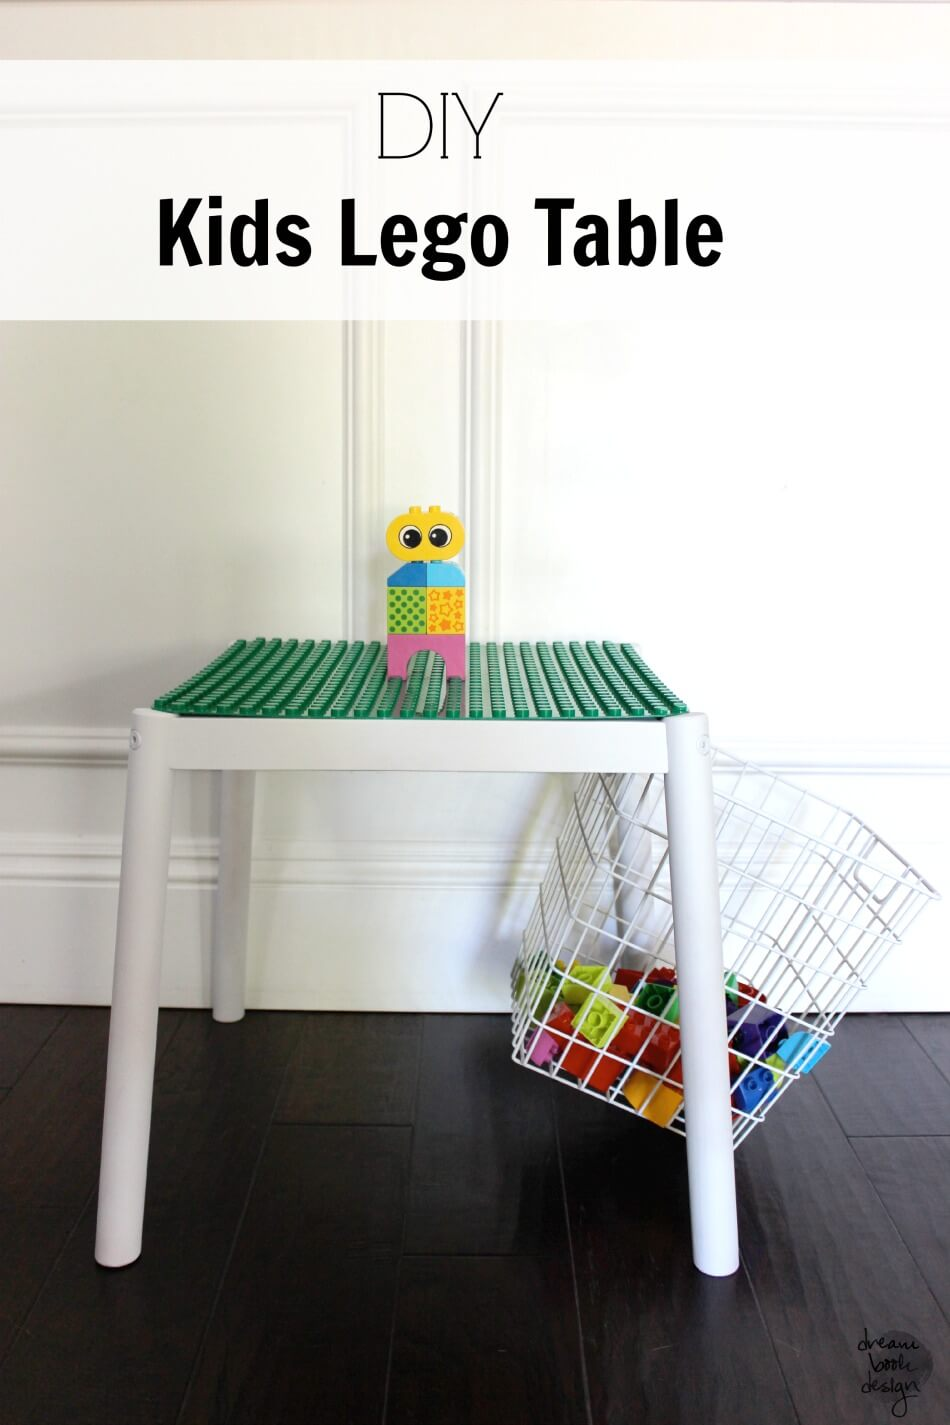 DIY Kids Lego Table